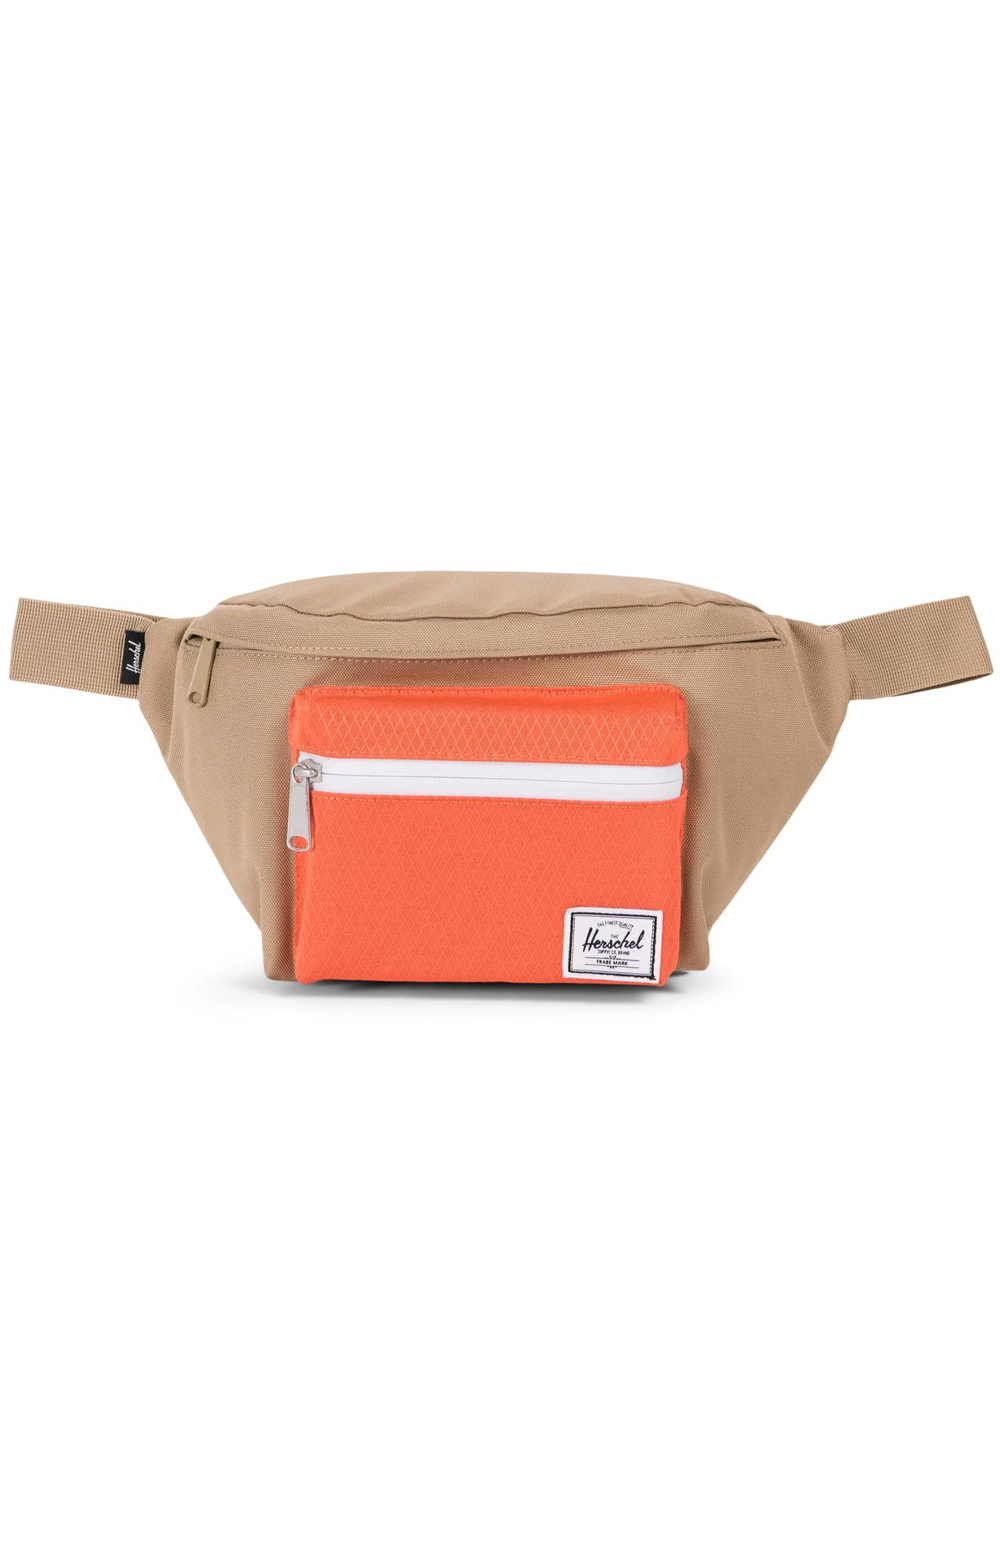 Herschel, Seventeen Fanny Pack - Kelp/Orange